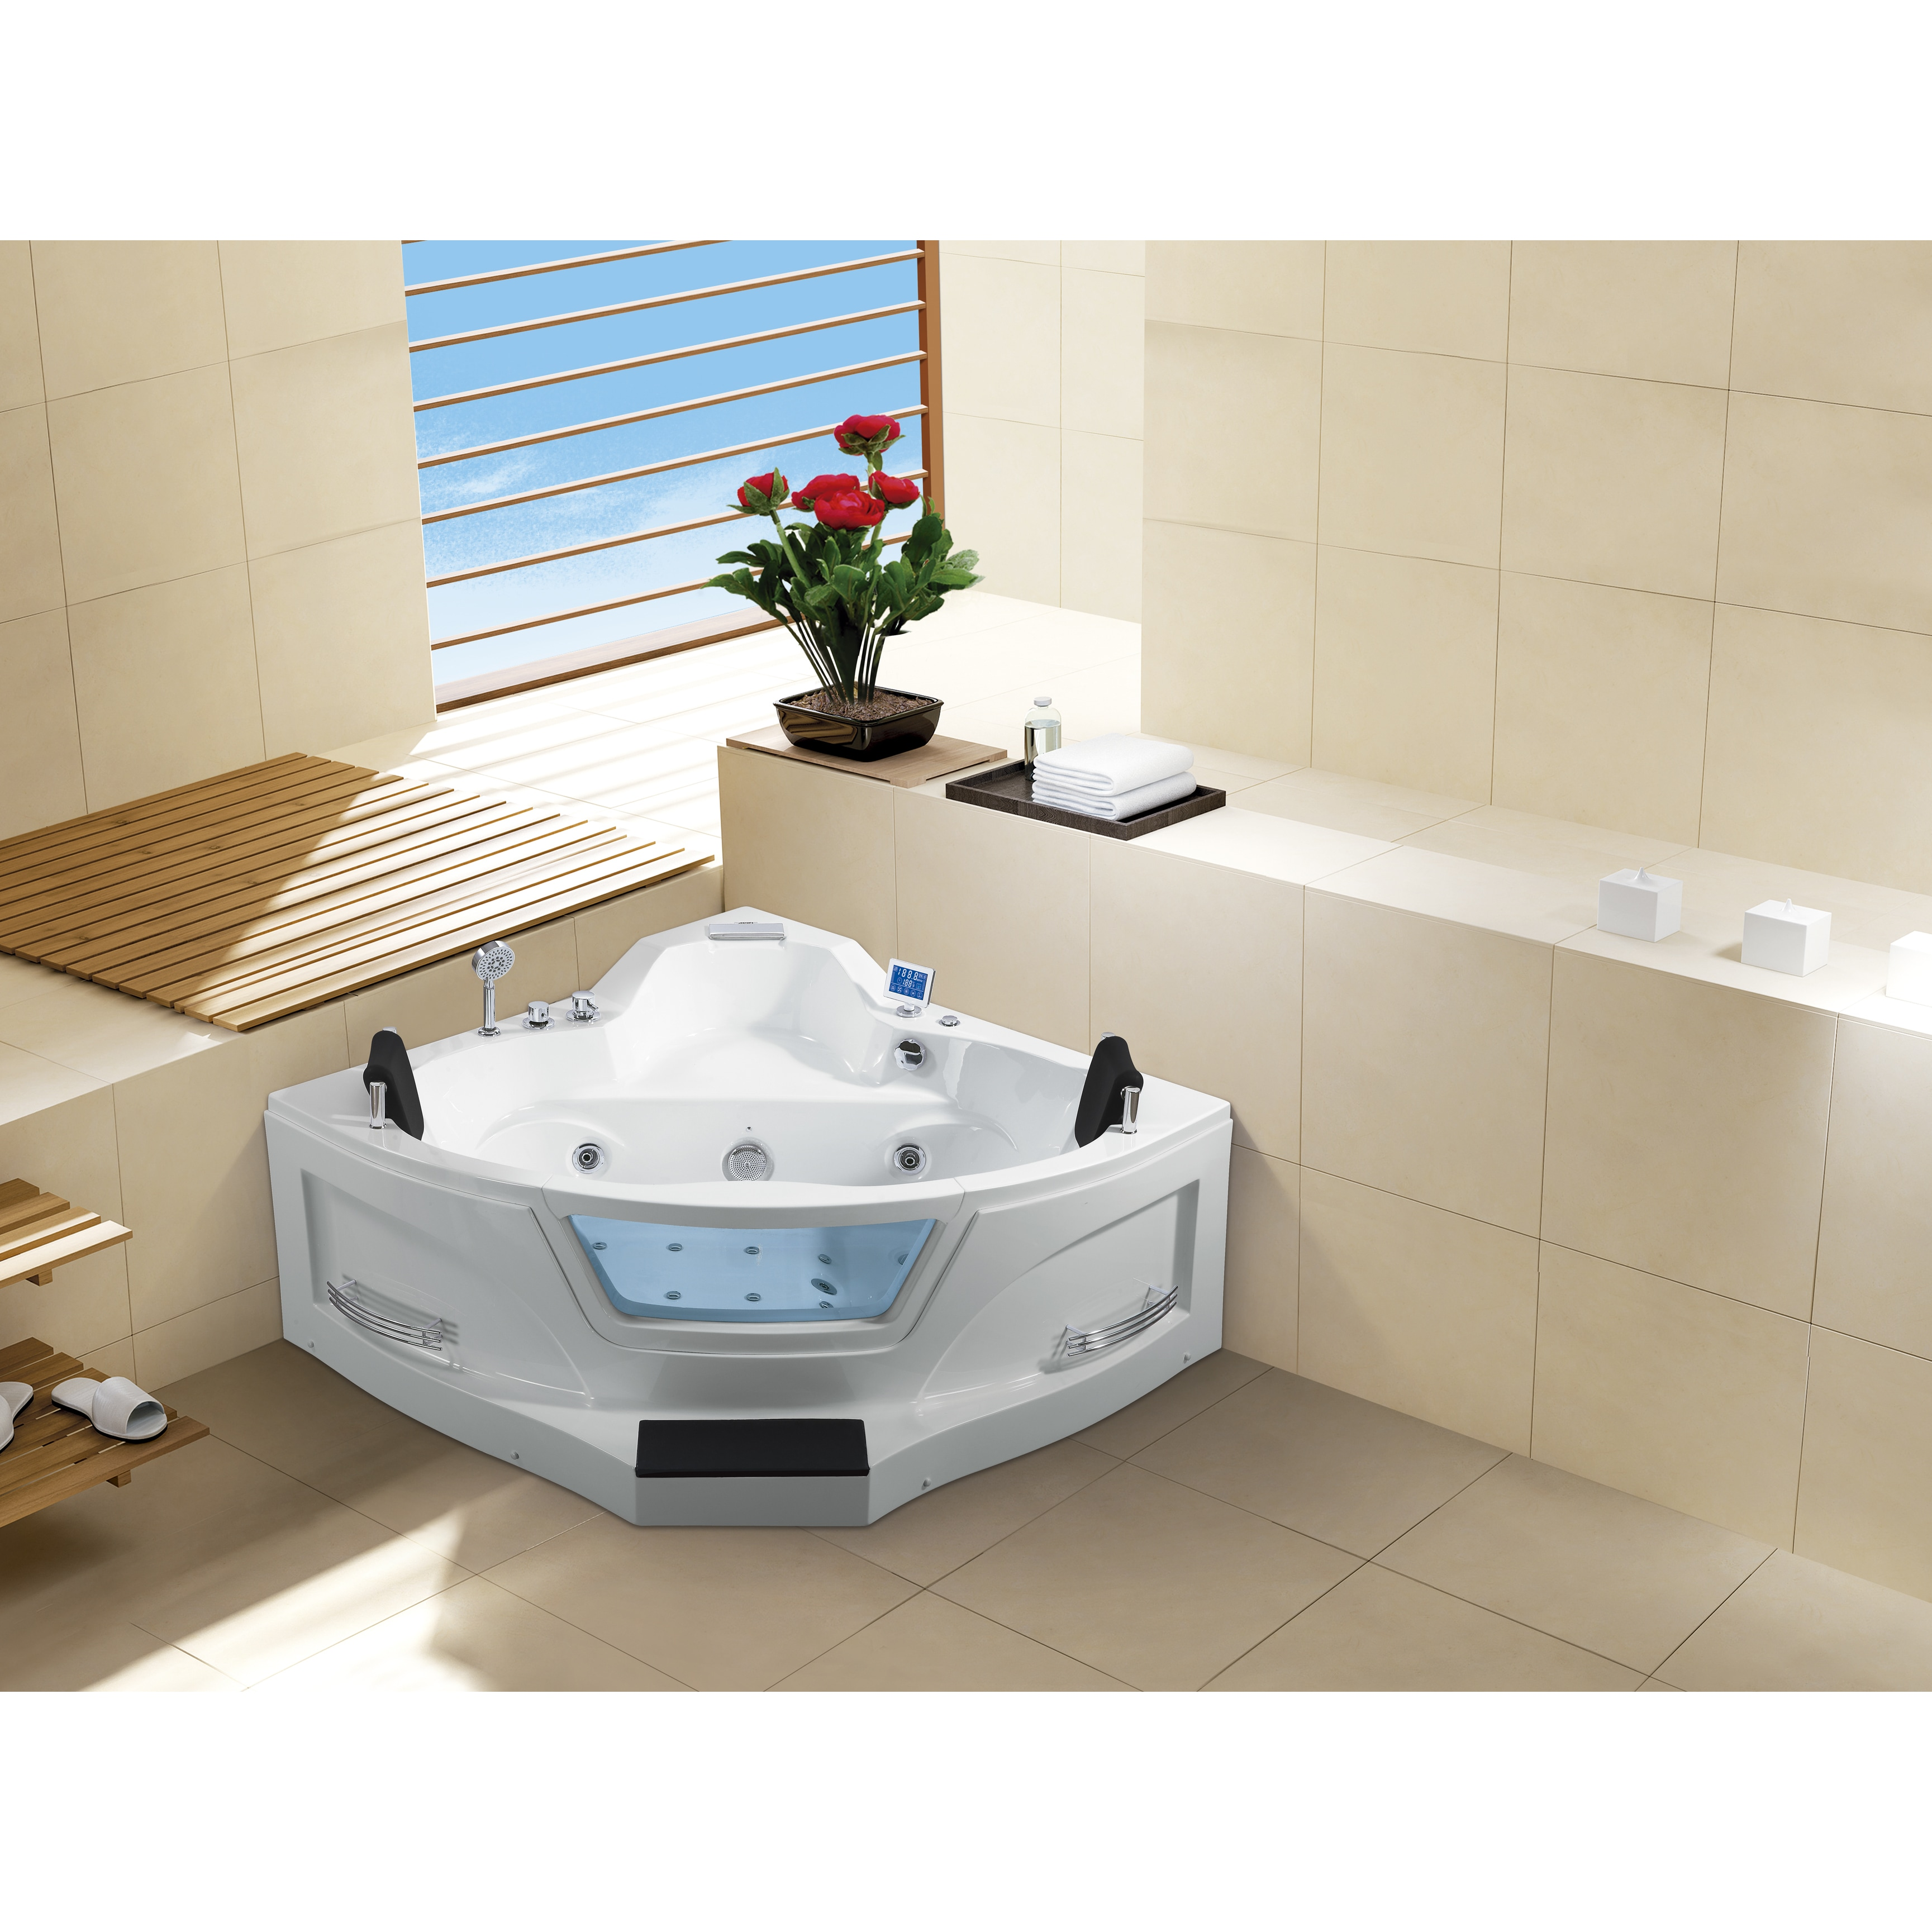 Ariel ARL-084 Two Person Whirlpool Bathtub - Free Shipping Today ...